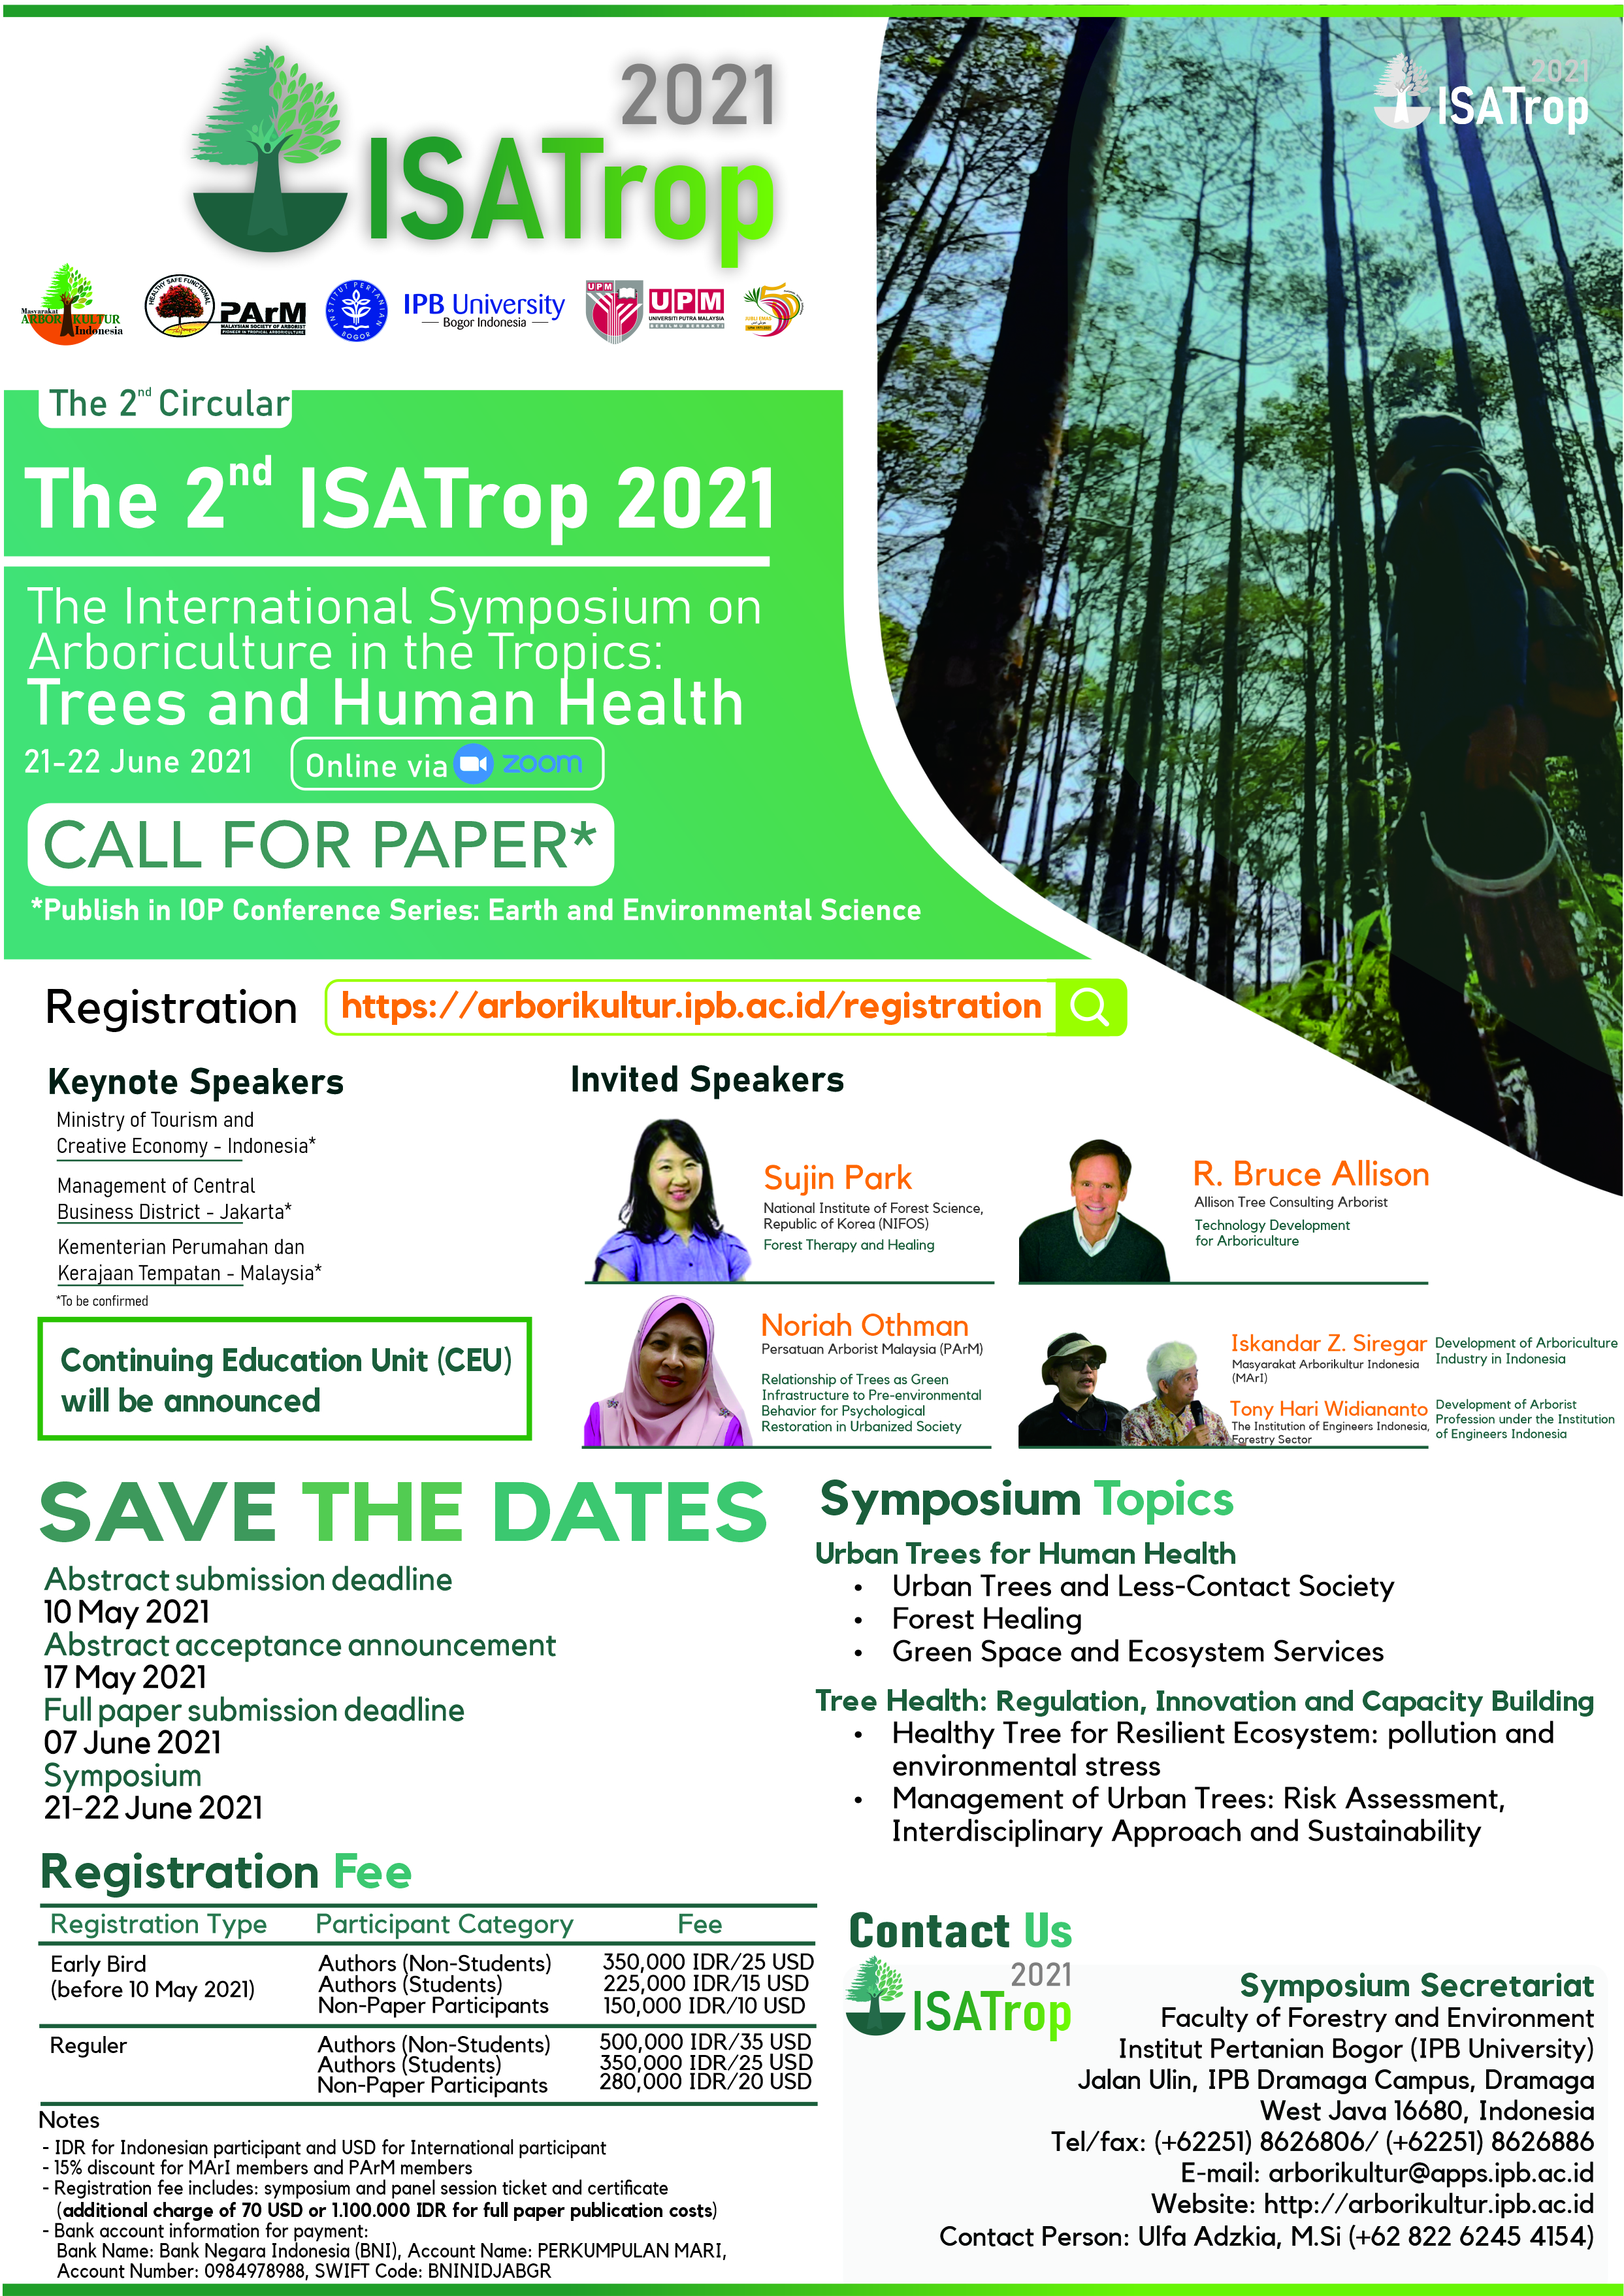 Call for Papers of the International Symposium on Arboriculture in the Tropics: Trees and Human Health